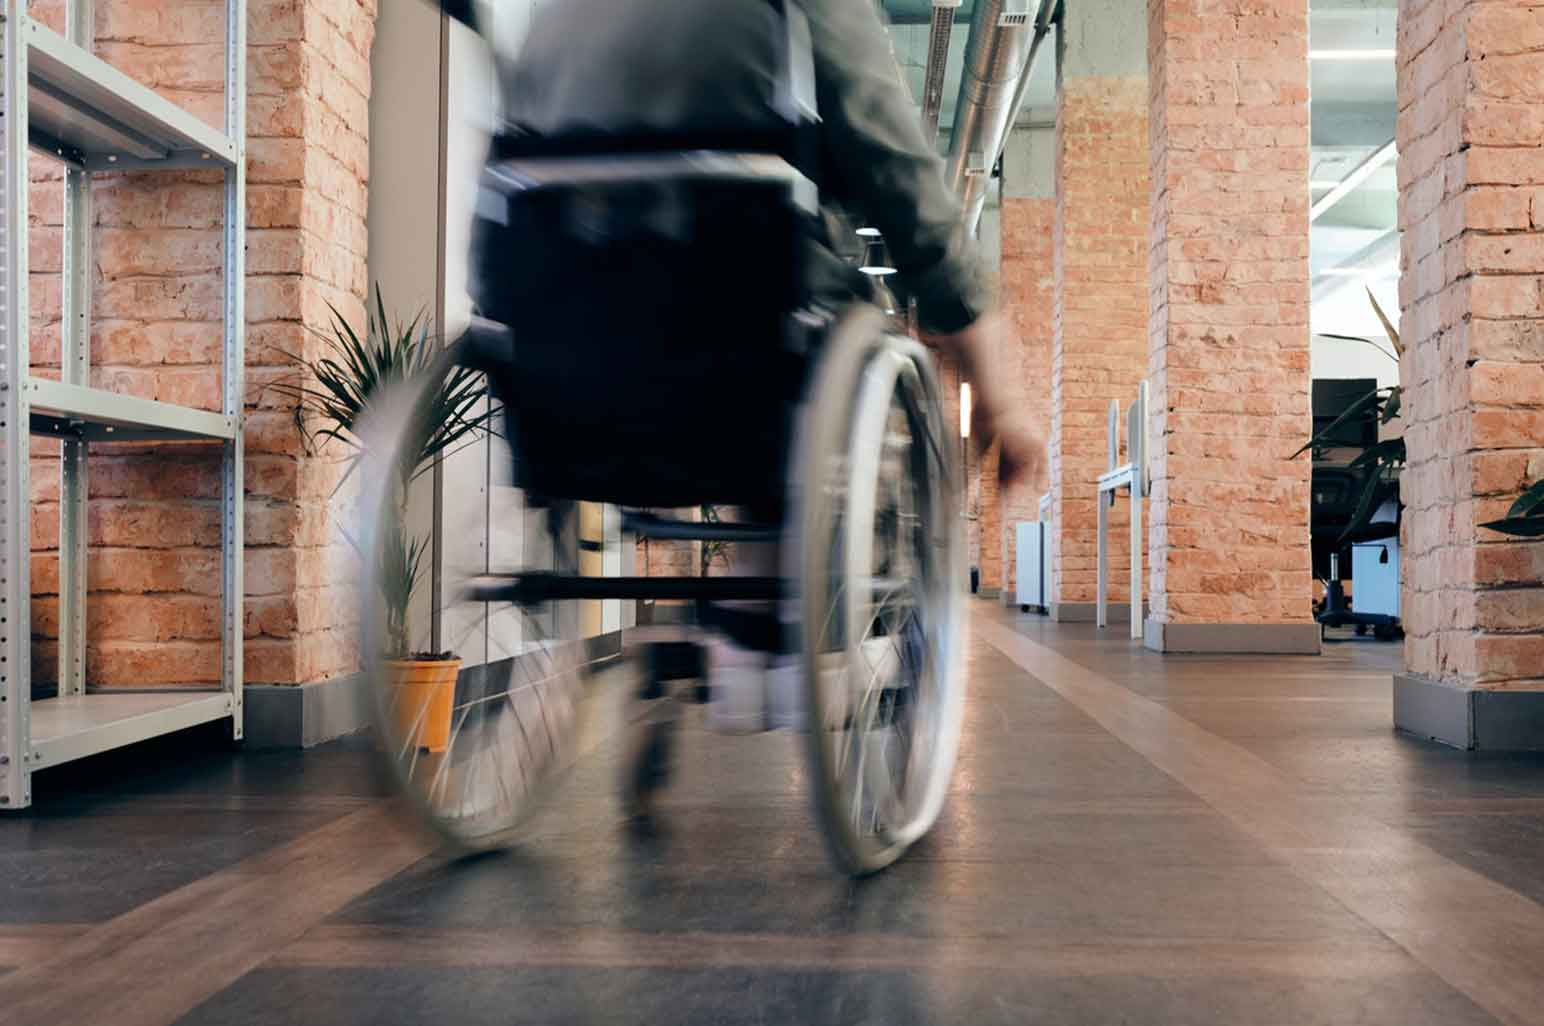 Qualities to Look For in a Travel Wheelchair